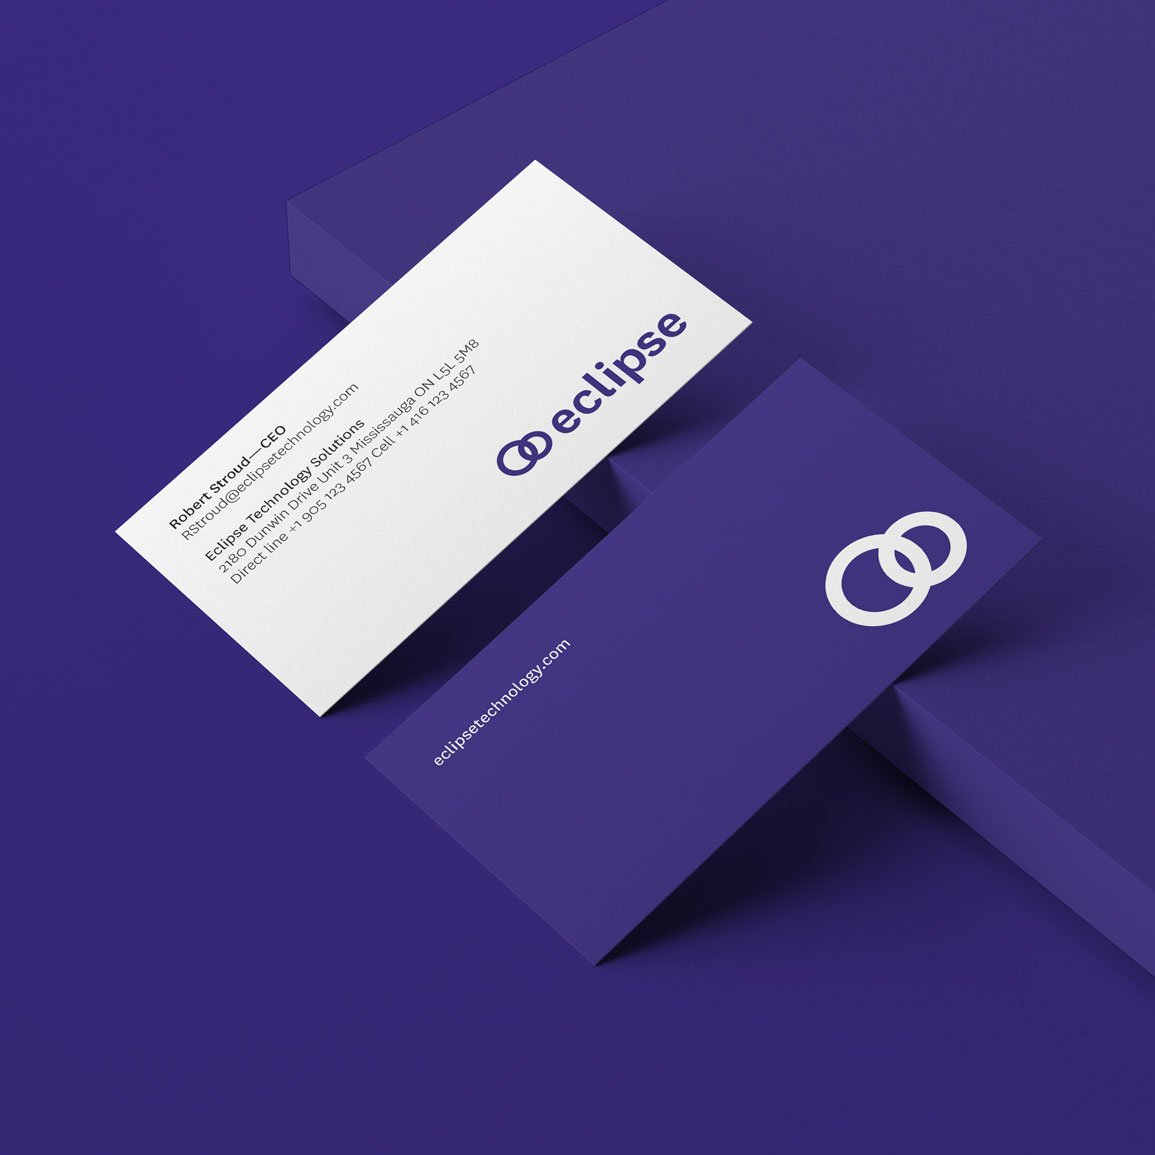 Technology solutions company stationery business card design